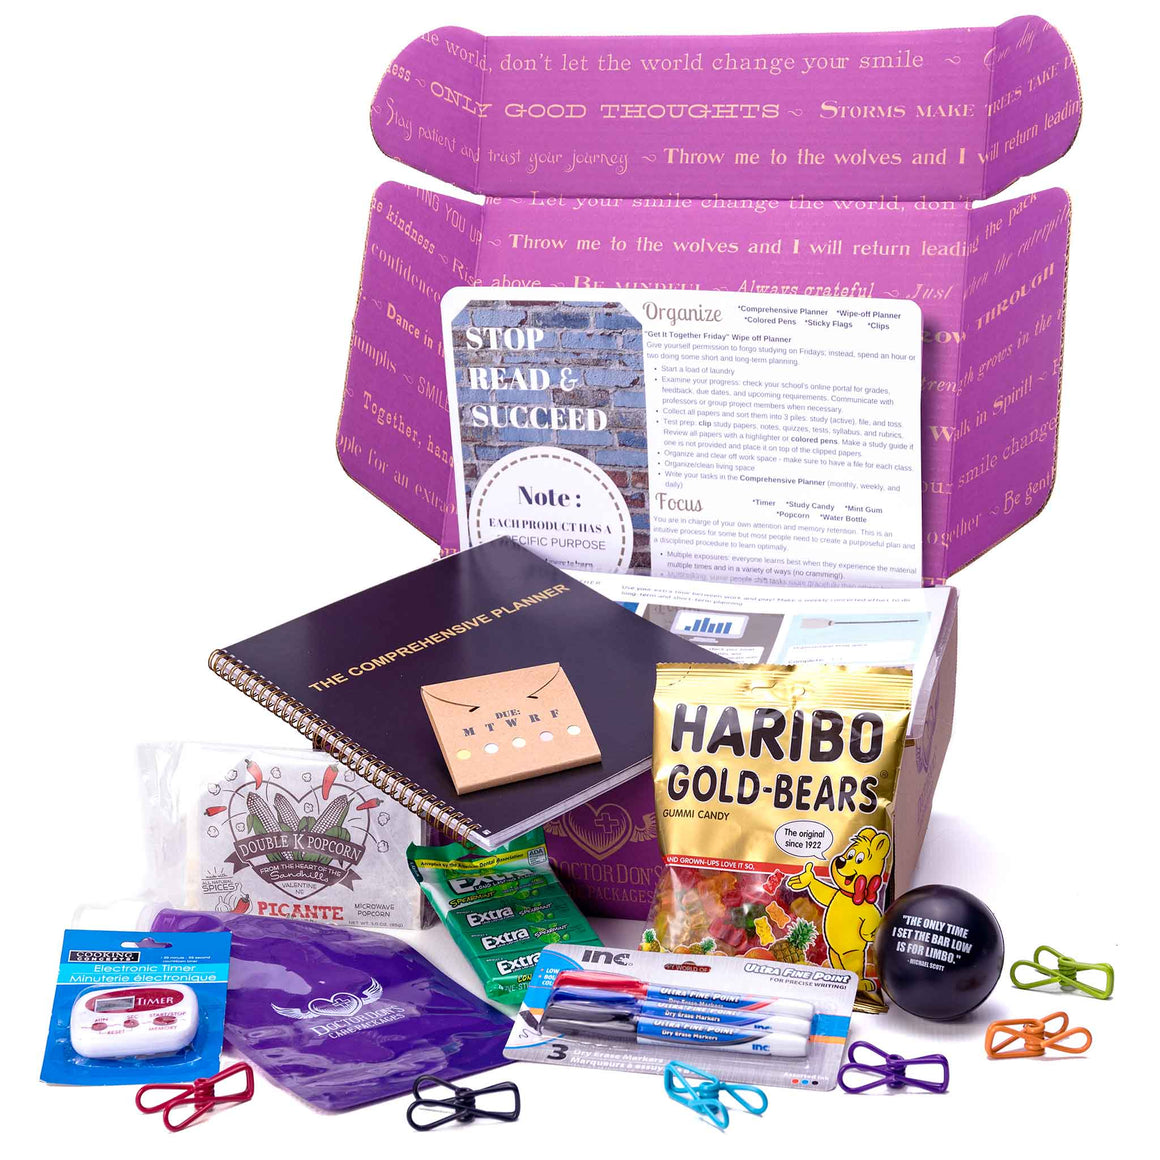 College Student Care Package from Dr. Don's Care Packages product image - items displayed in front of box.